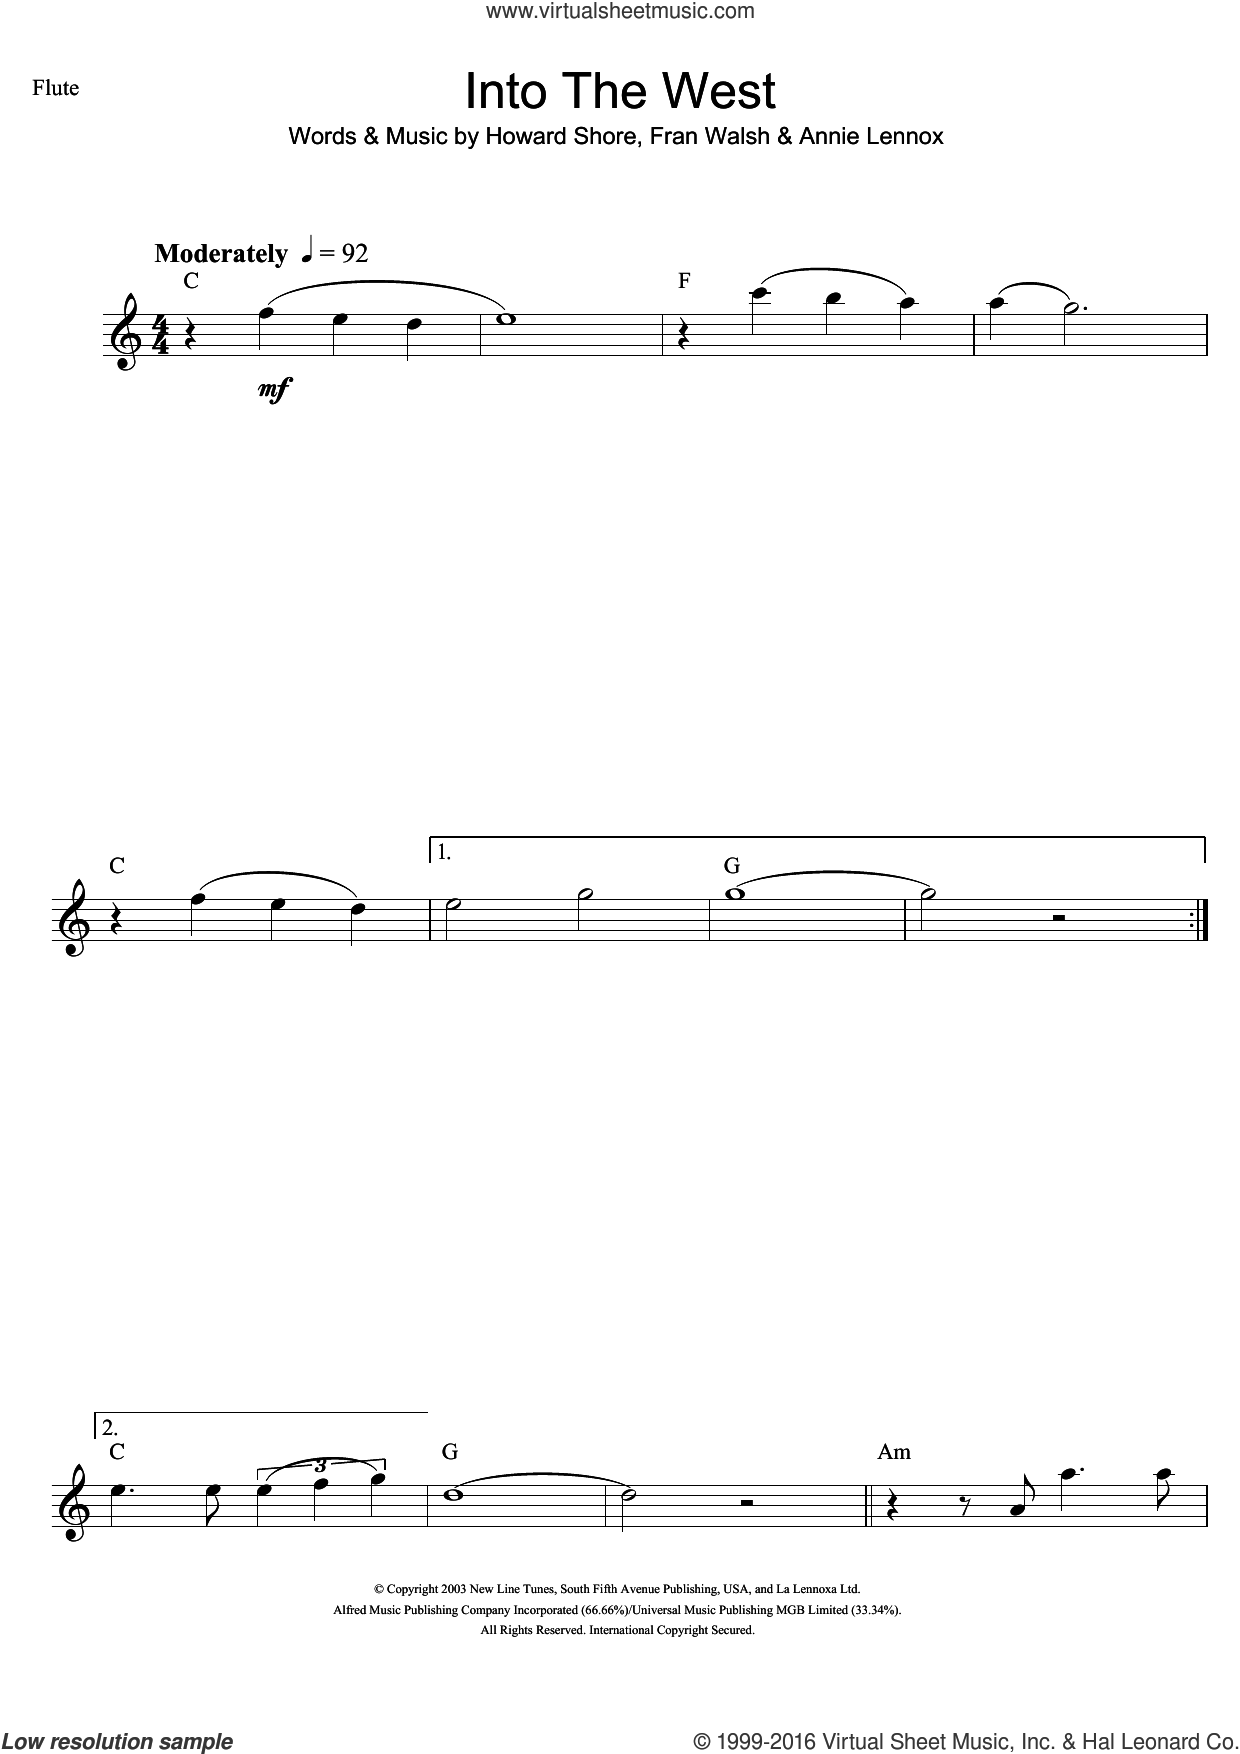 Into The West (from The Lord Of The Rings: The Return Of The King) sheet music for flute solo by Annie Lennox, Fran Walsh and Howard Shore, intermediate skill level